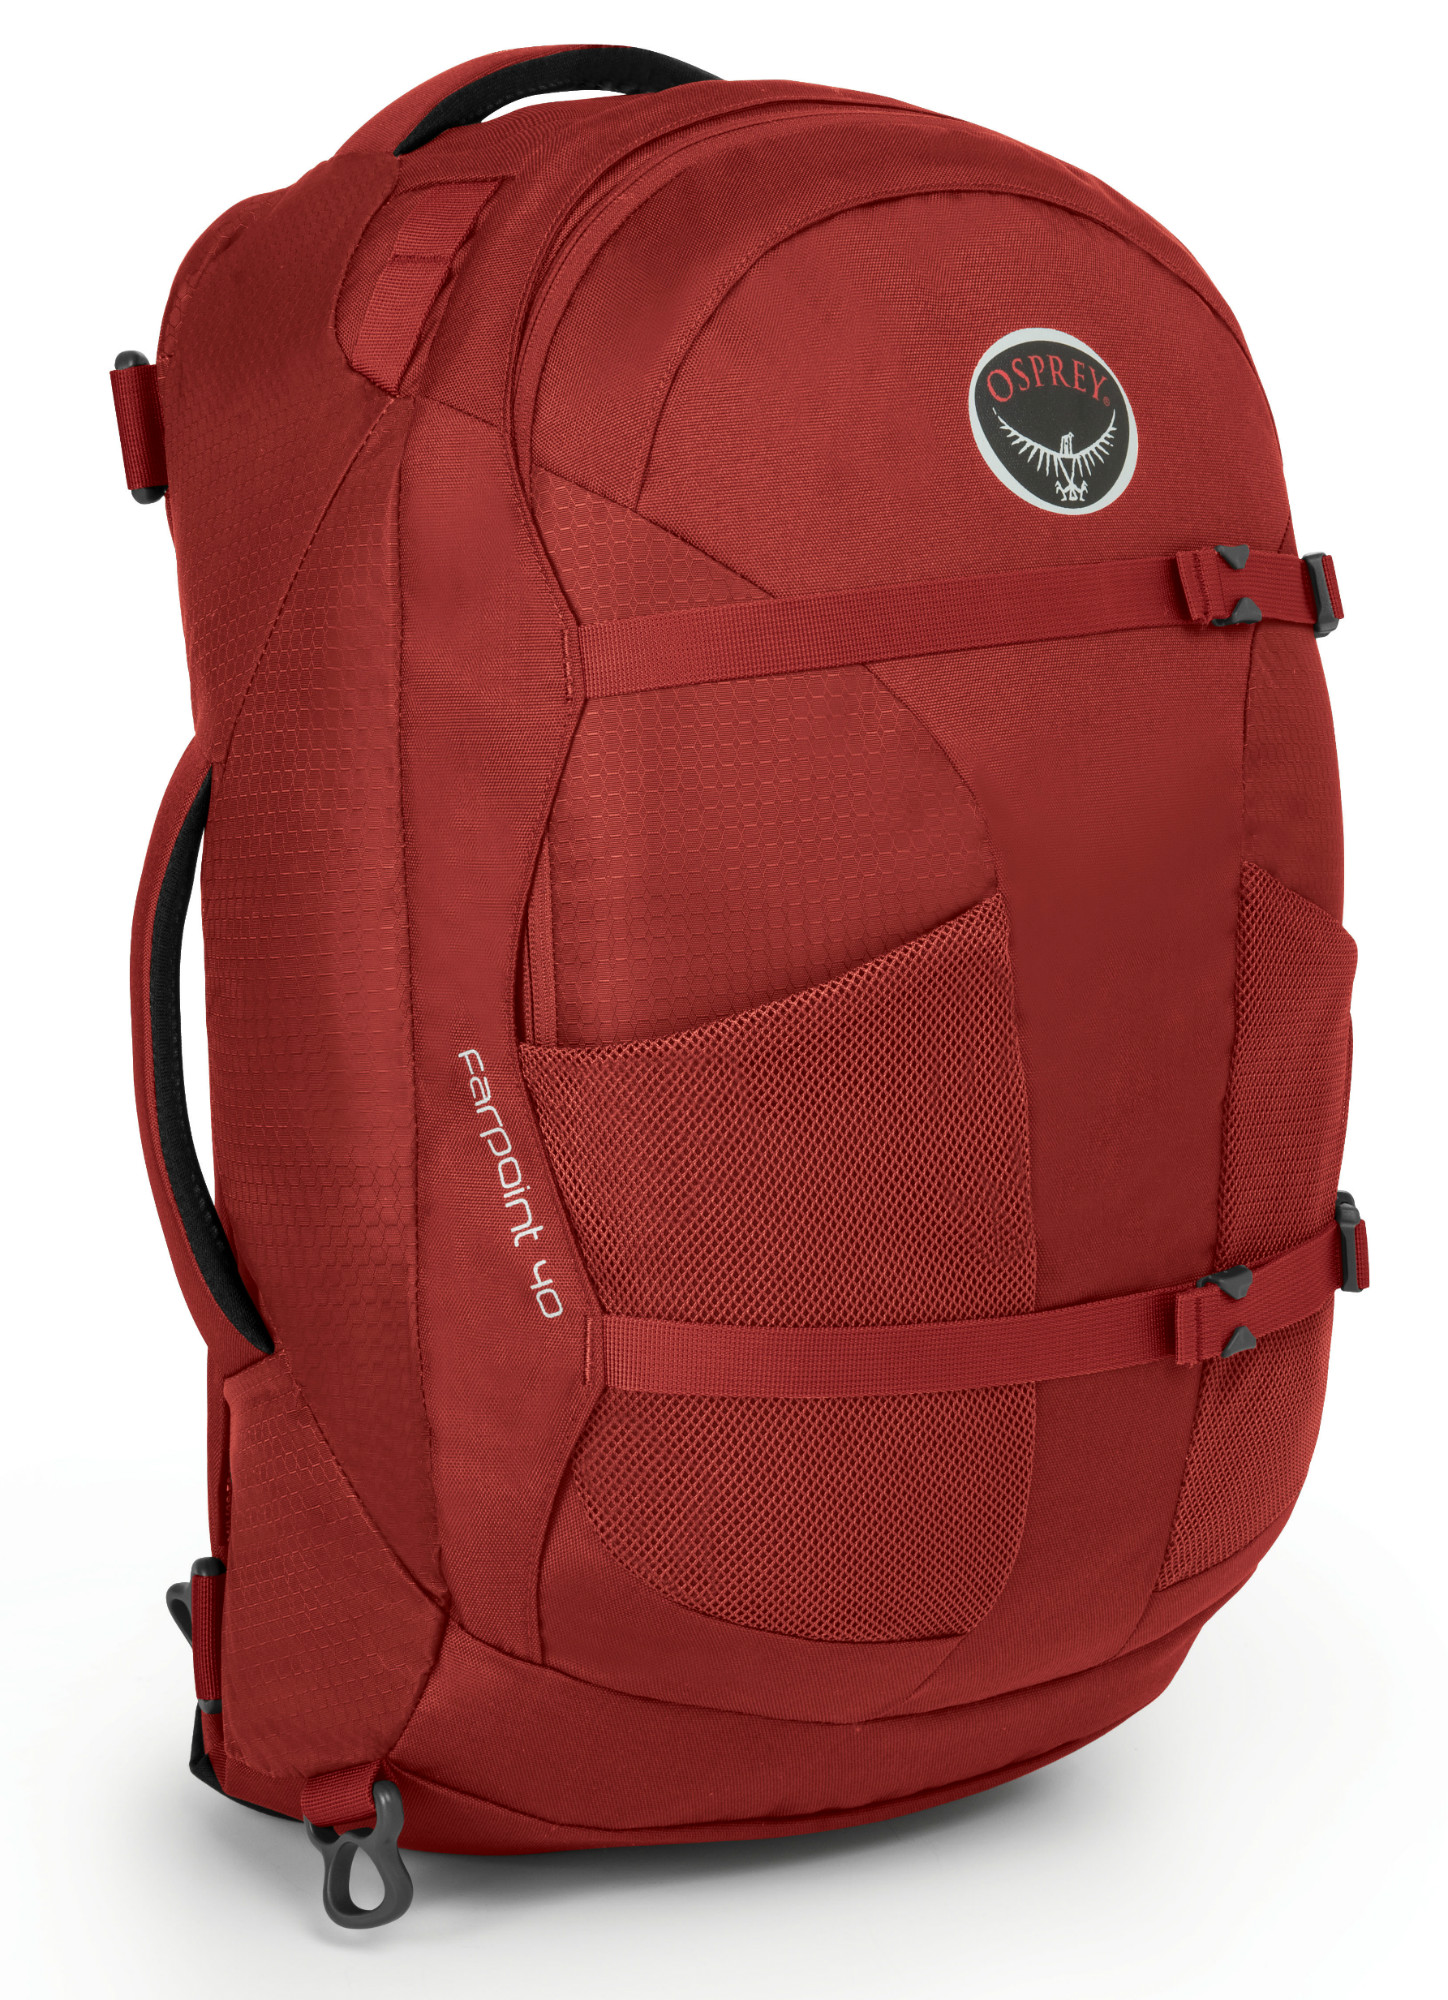 ffd8a0e4d2 Osprey Farpoint 40 L Backpack with Free S H — CampSaver